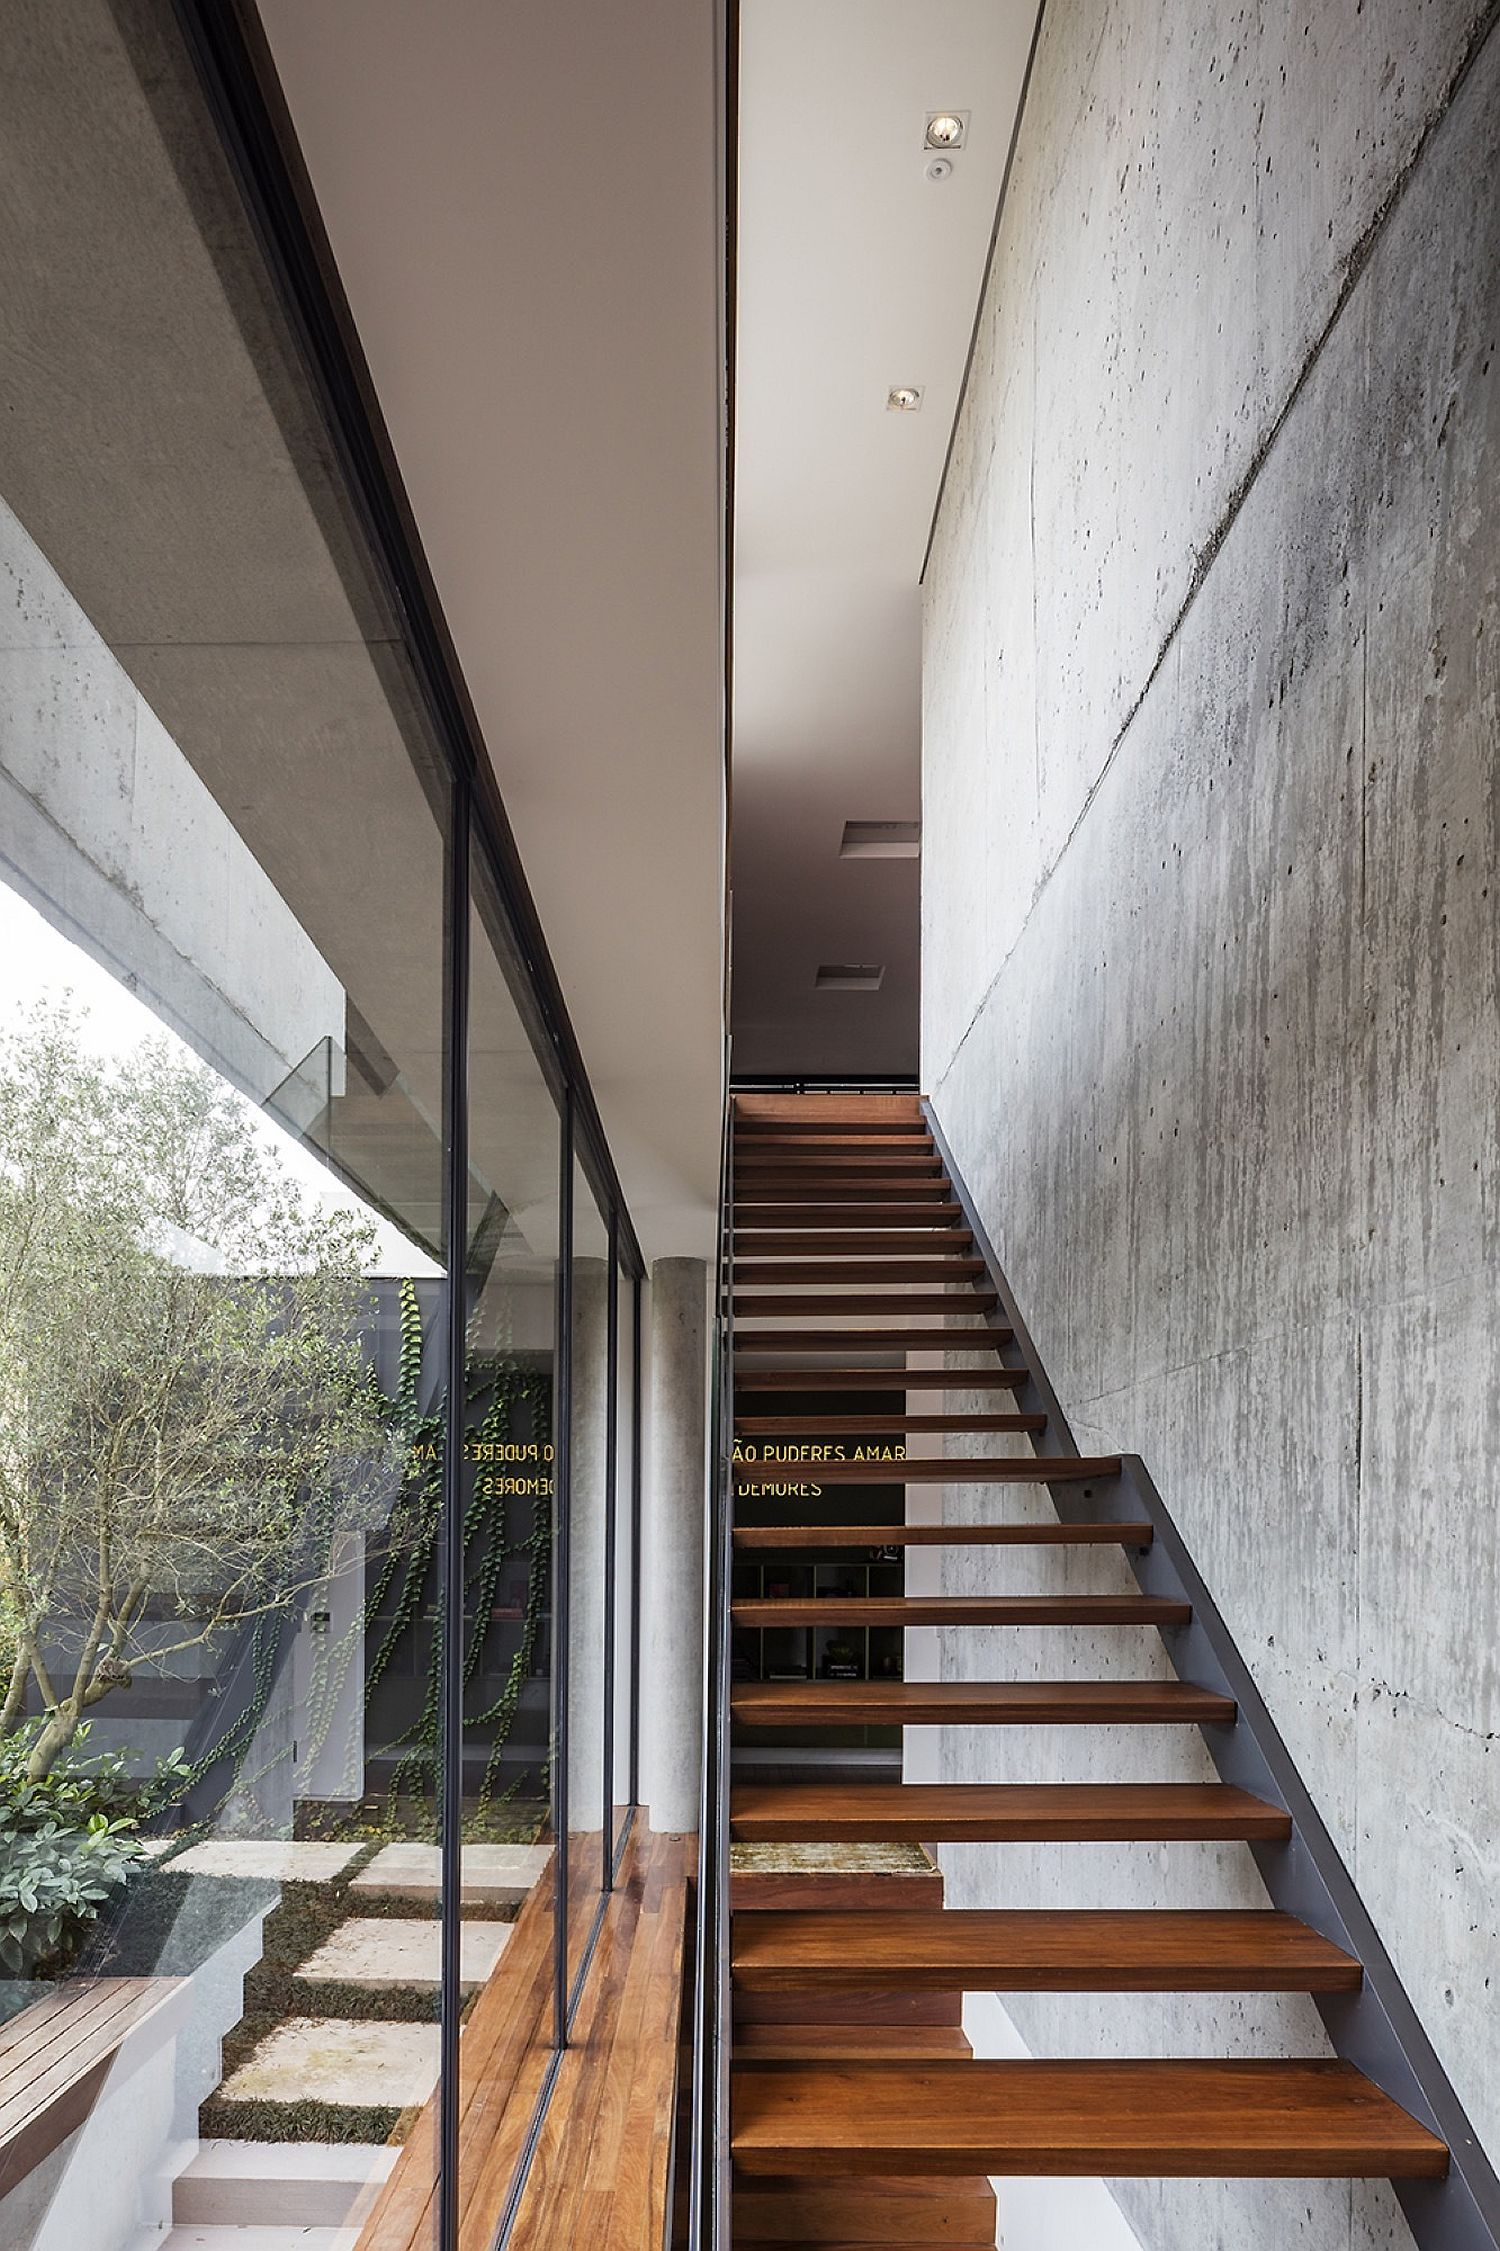 Contemporary-wooden-stairway-with-concrete-wall-next-to-it